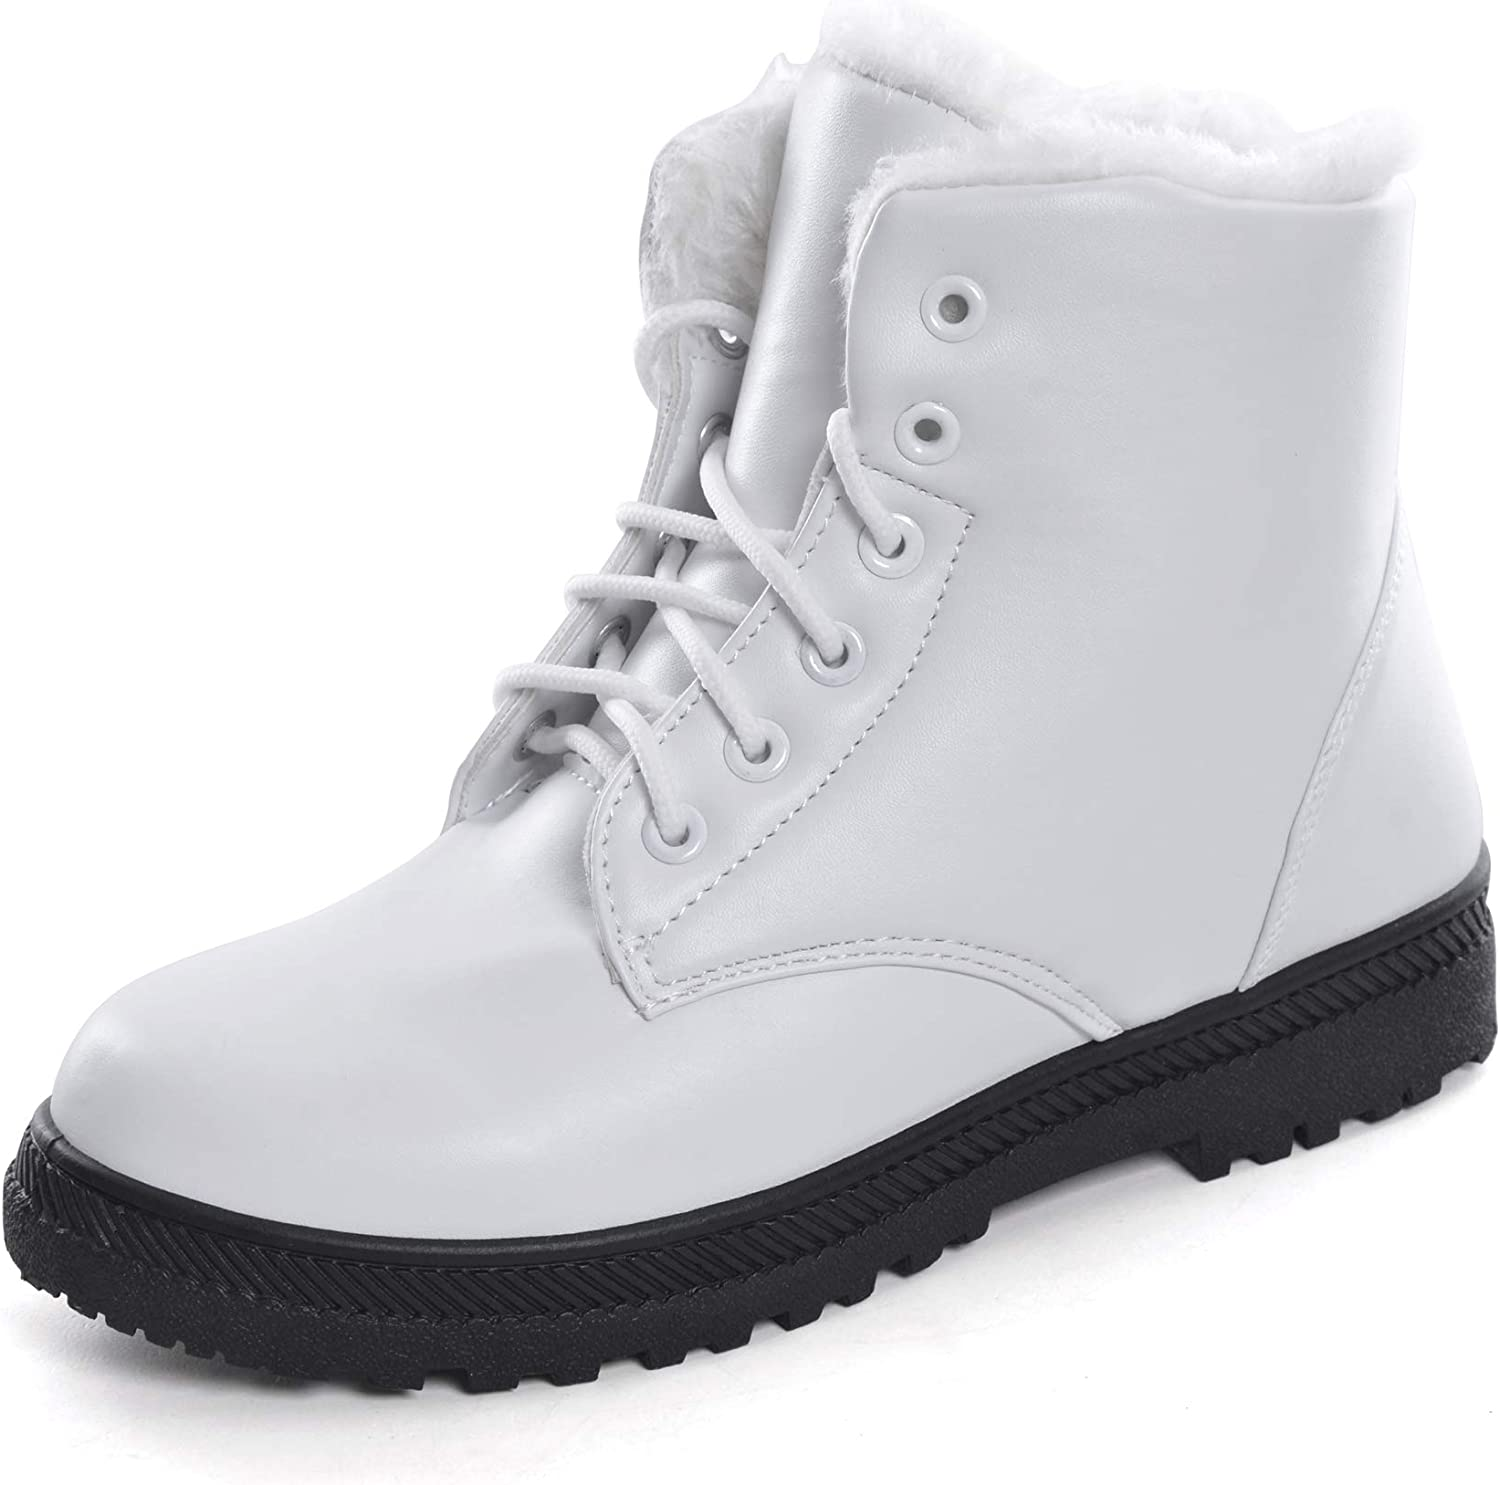 Yellow Tree Company Women Winter Snow Boots Fur Sneakers shoes Lace-up Flat Platform Ankle Booties Boots